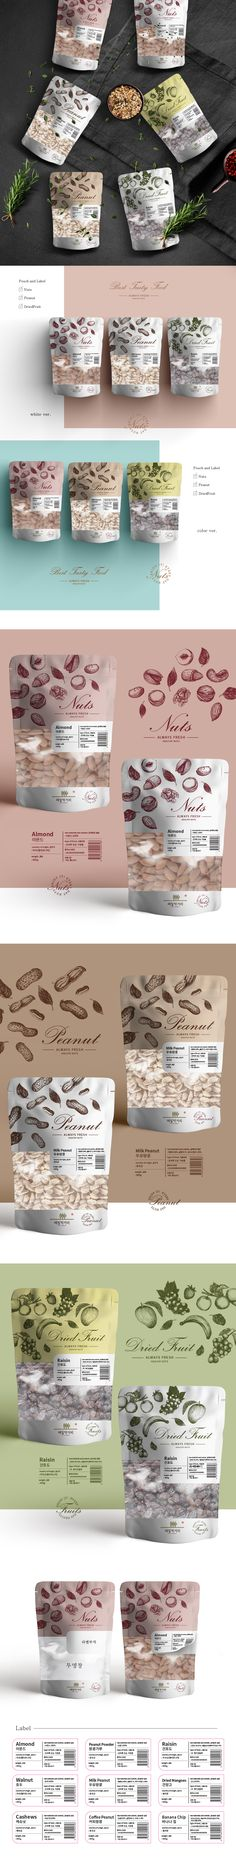 Popcorn Packaging, Spices Packaging, Pouch Packaging, Food Packaging Design, Cute Packaging, Brand Packaging, Cantonese Food, Dessert In A Jar, Packing Boxes